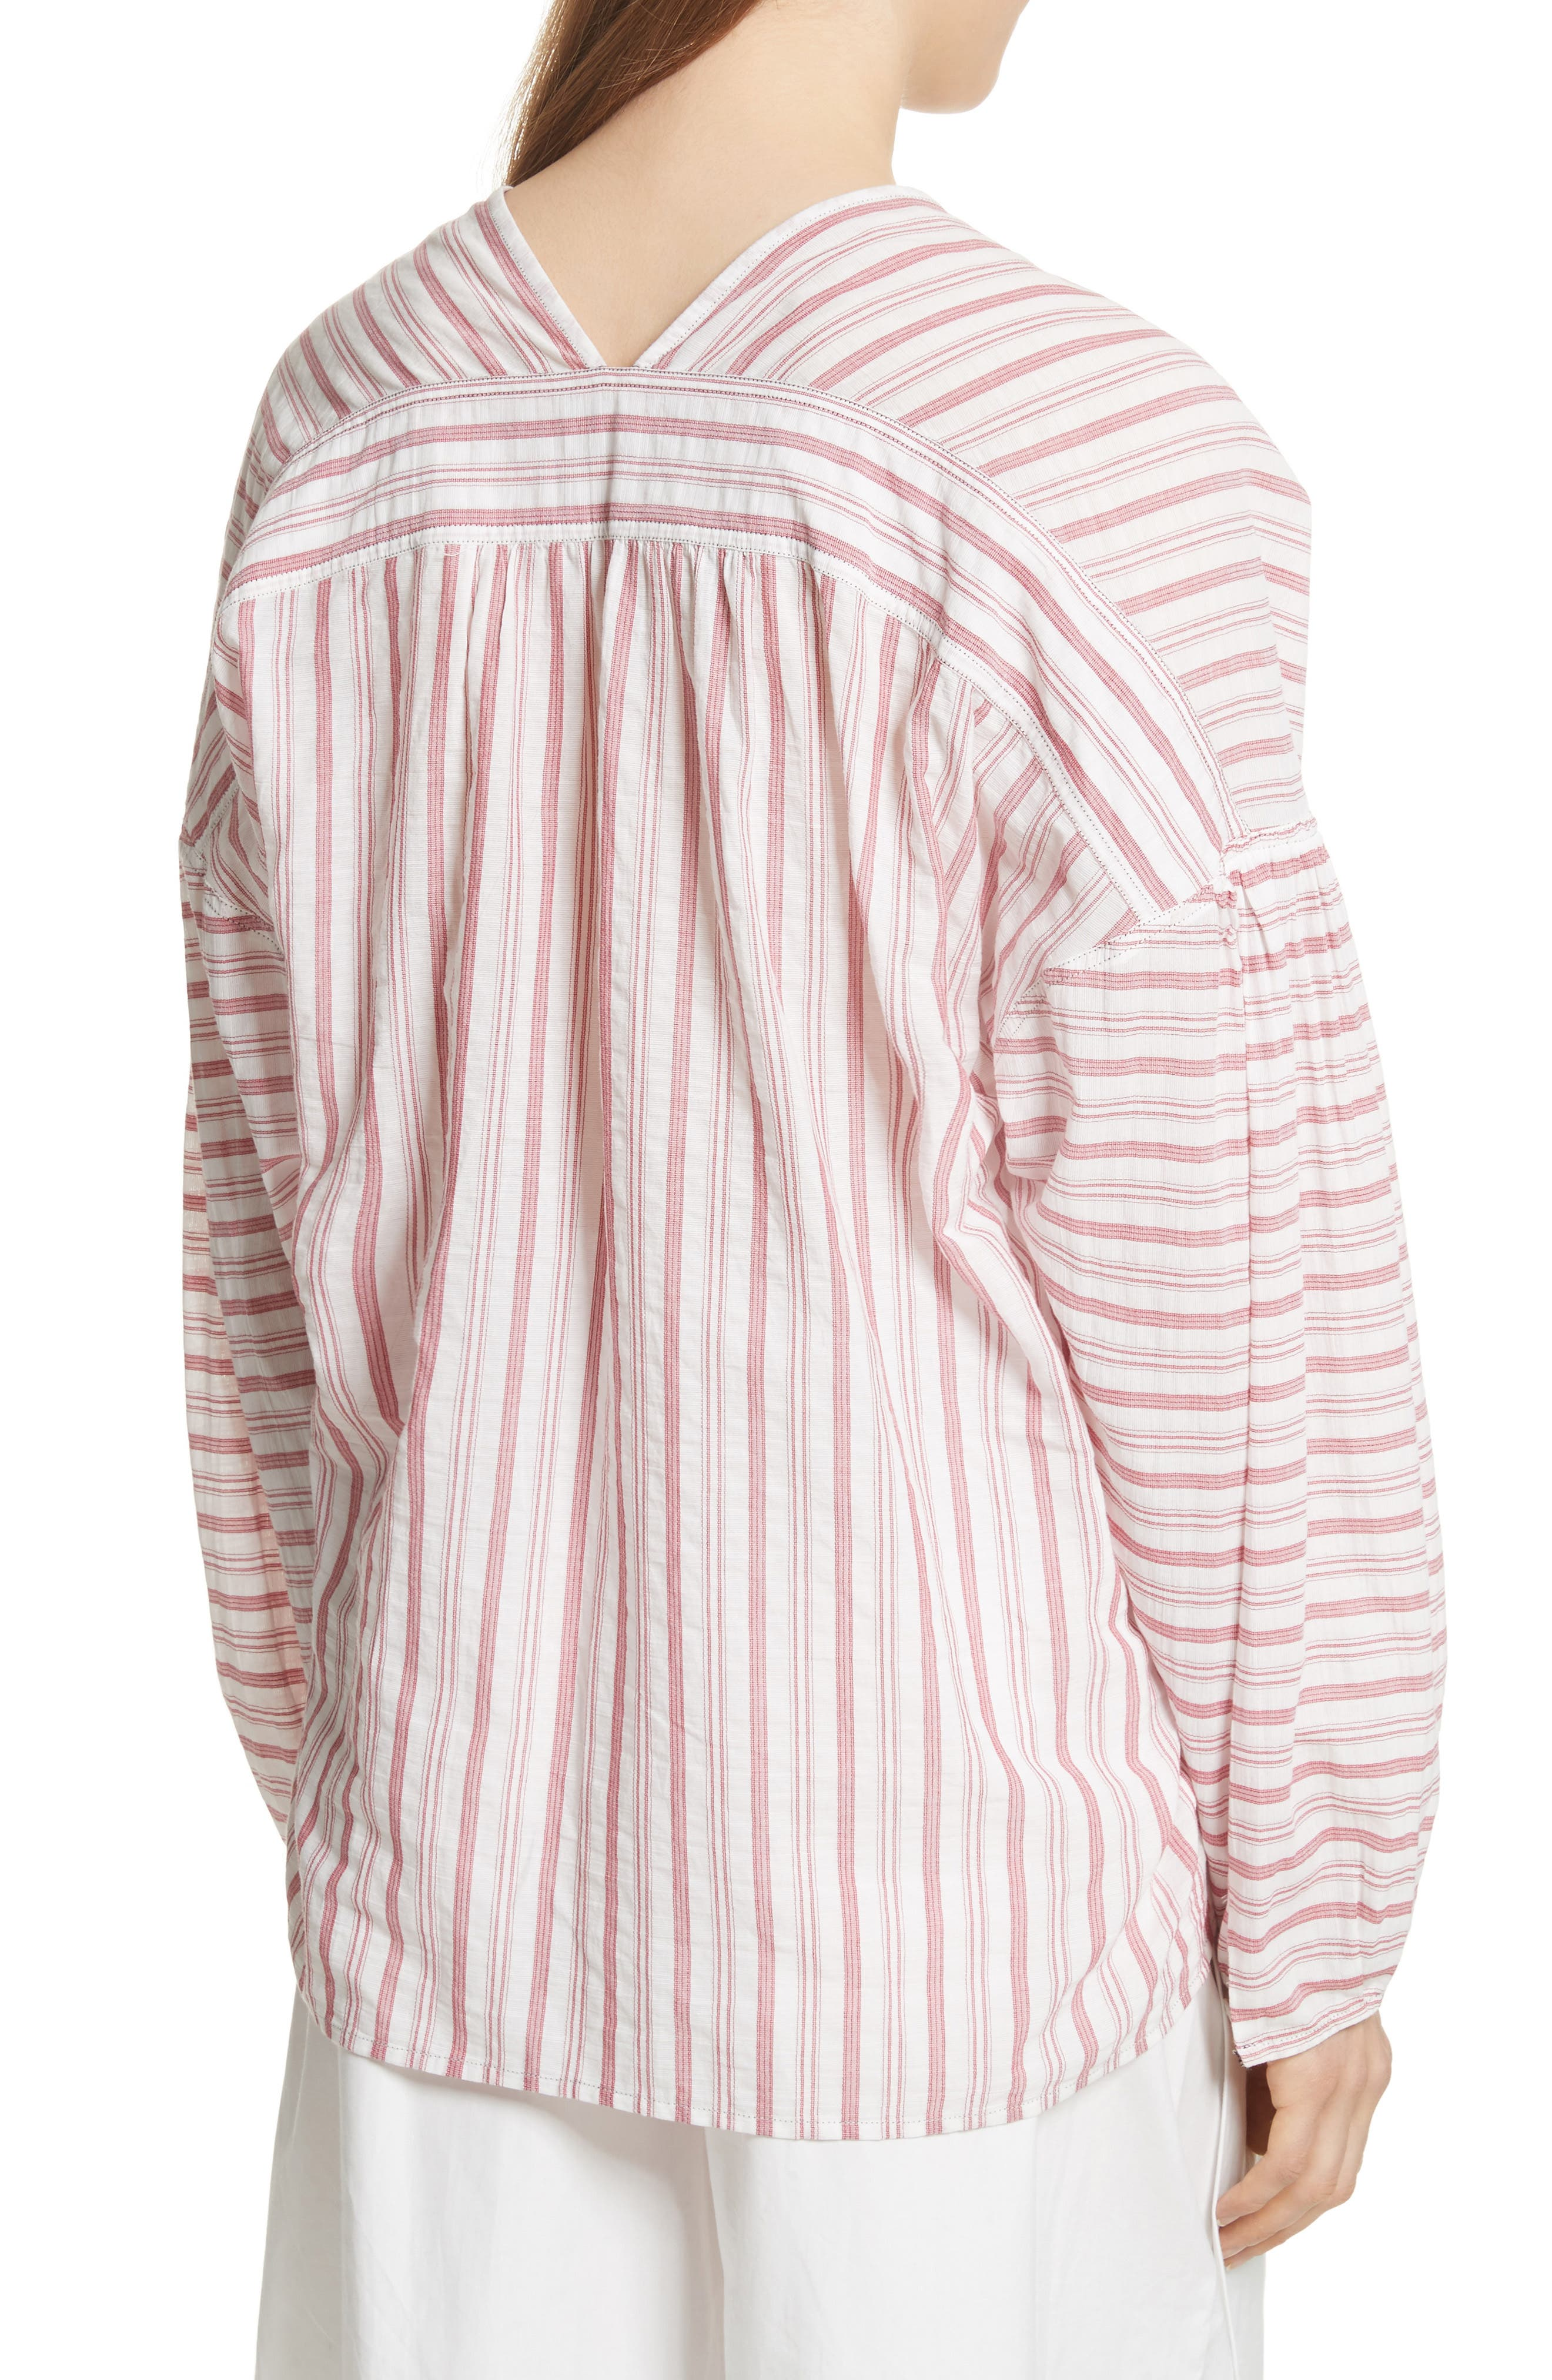 Stripe Cotton Top,                             Alternate thumbnail 2, color,                             Off White/ Poppy